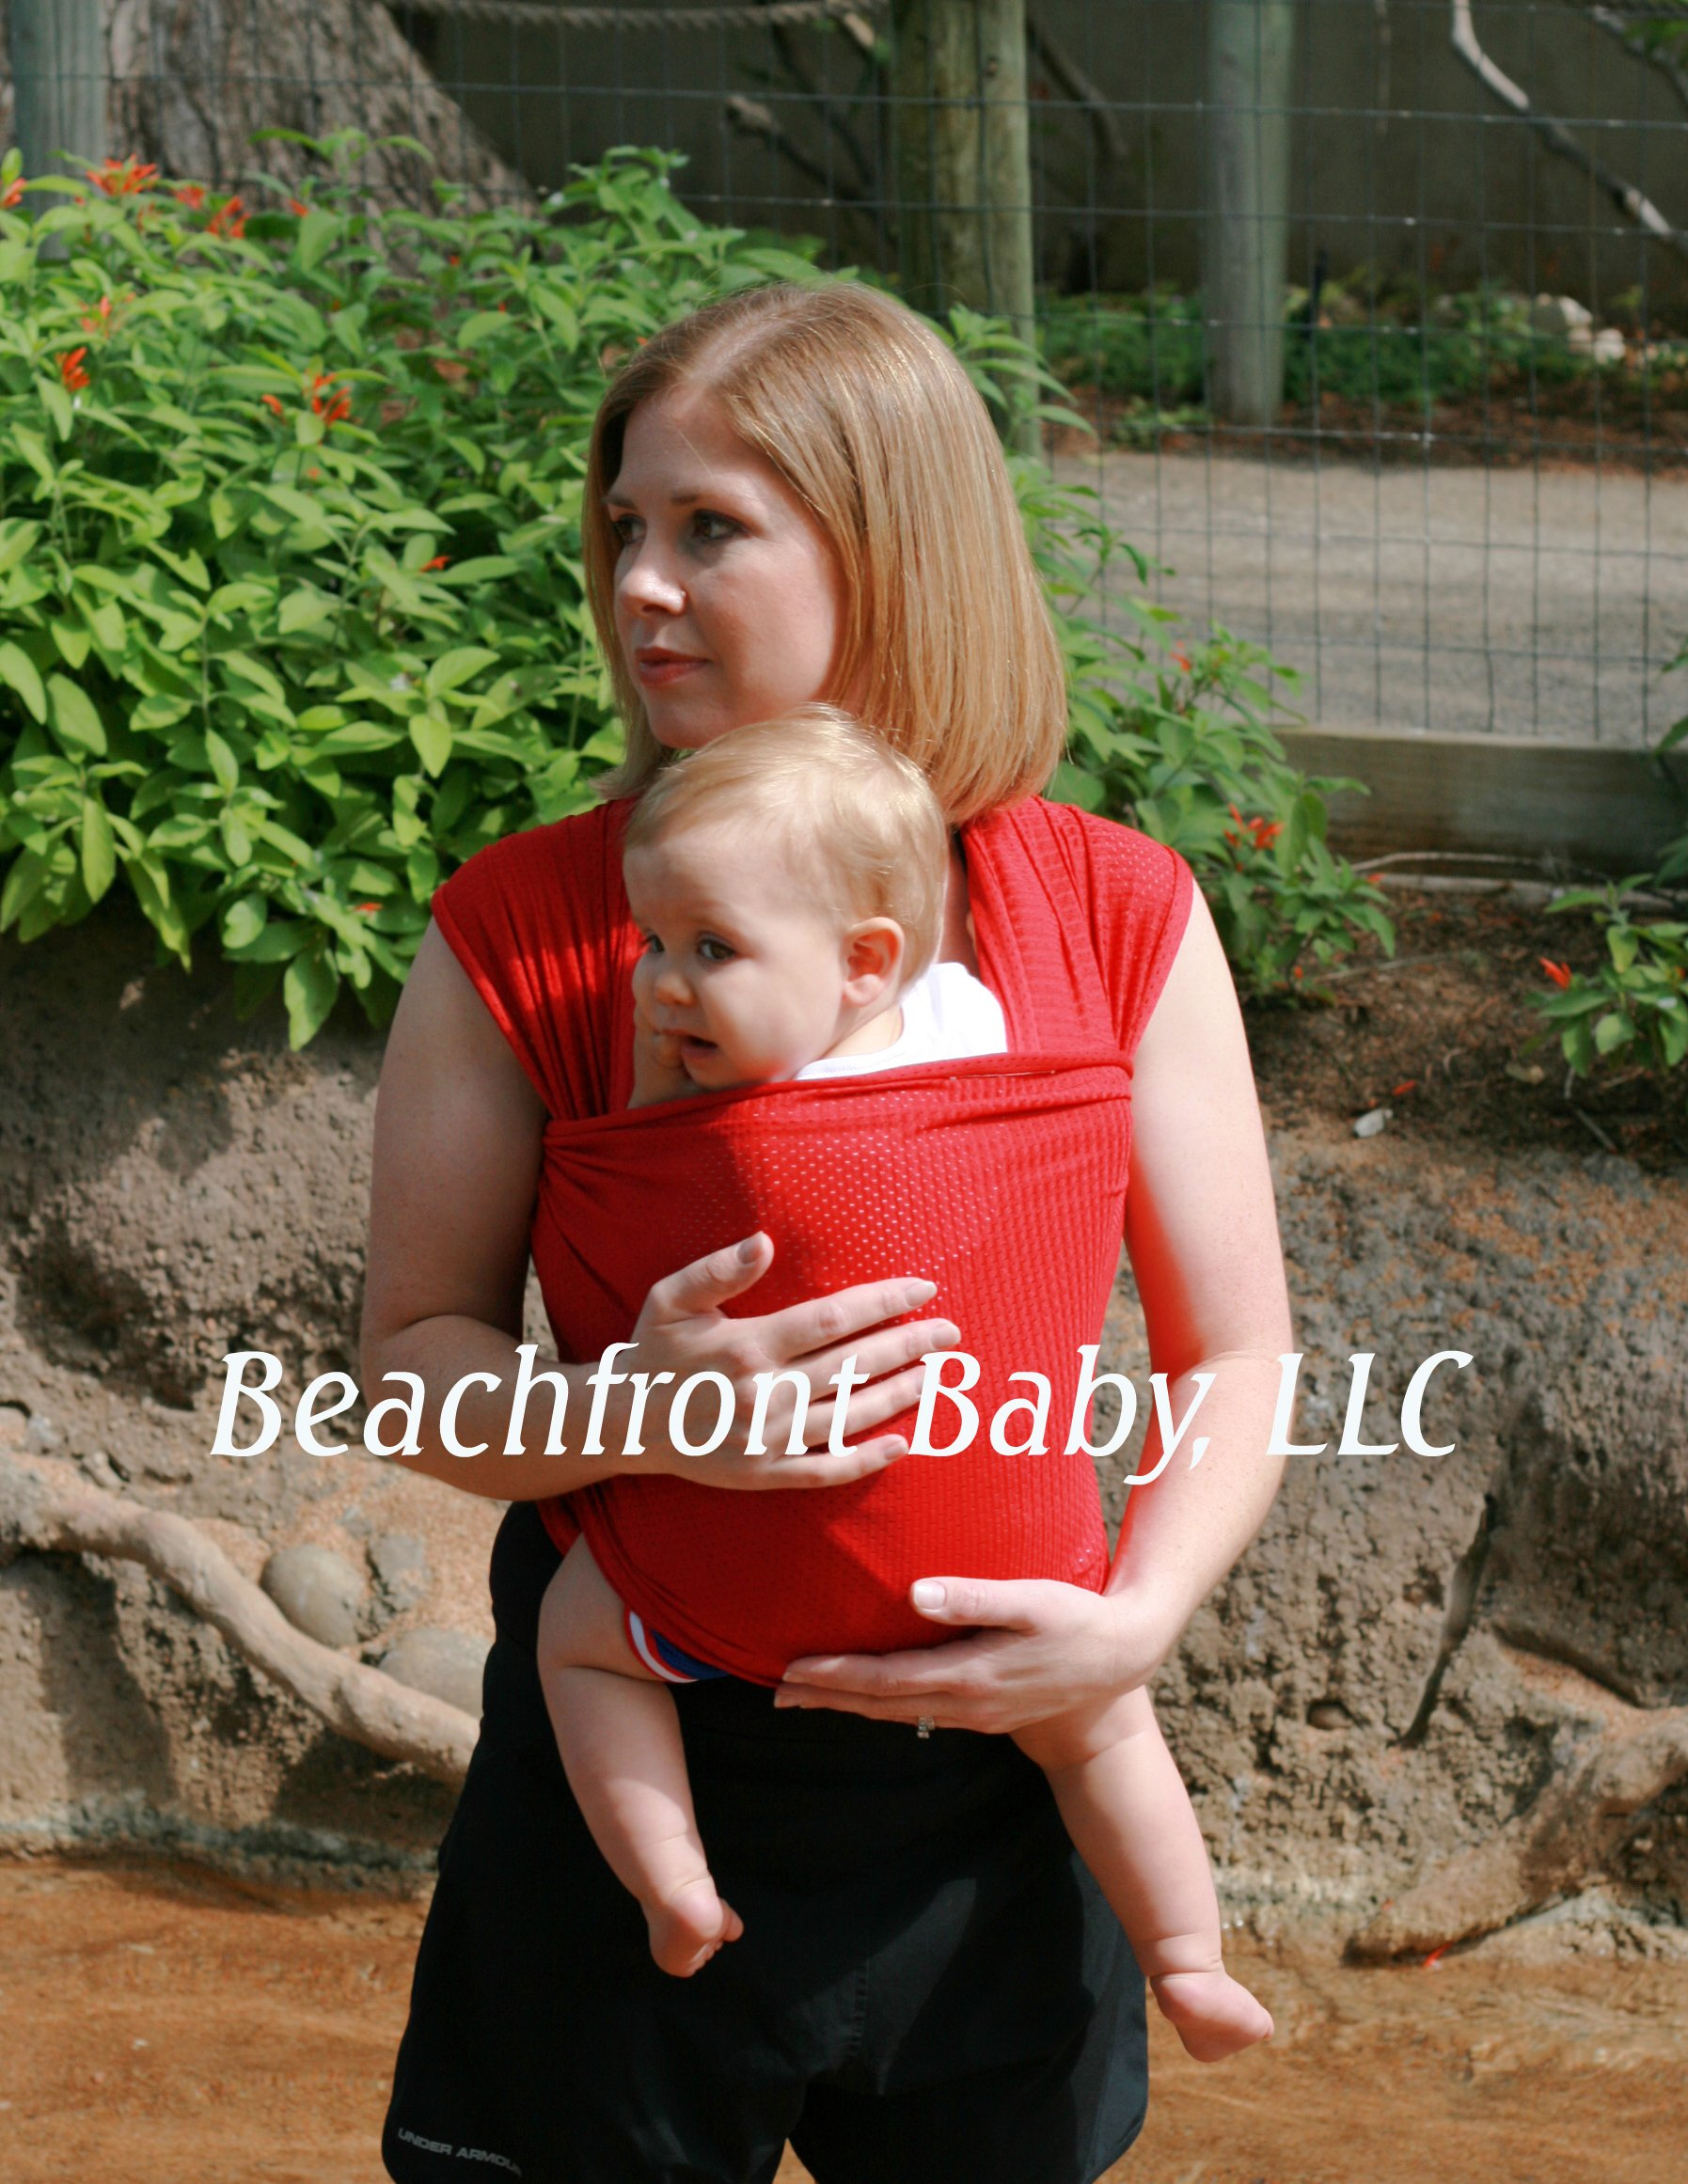 Beachfront Baby Wrap - Versatile Water & Warm Weather Baby Carrier | Made in USA with Safety Tested Fabric, CPSIA & ASTM Compliant | Lightweight, Quick Dry (Tropical Punch, X-Long)